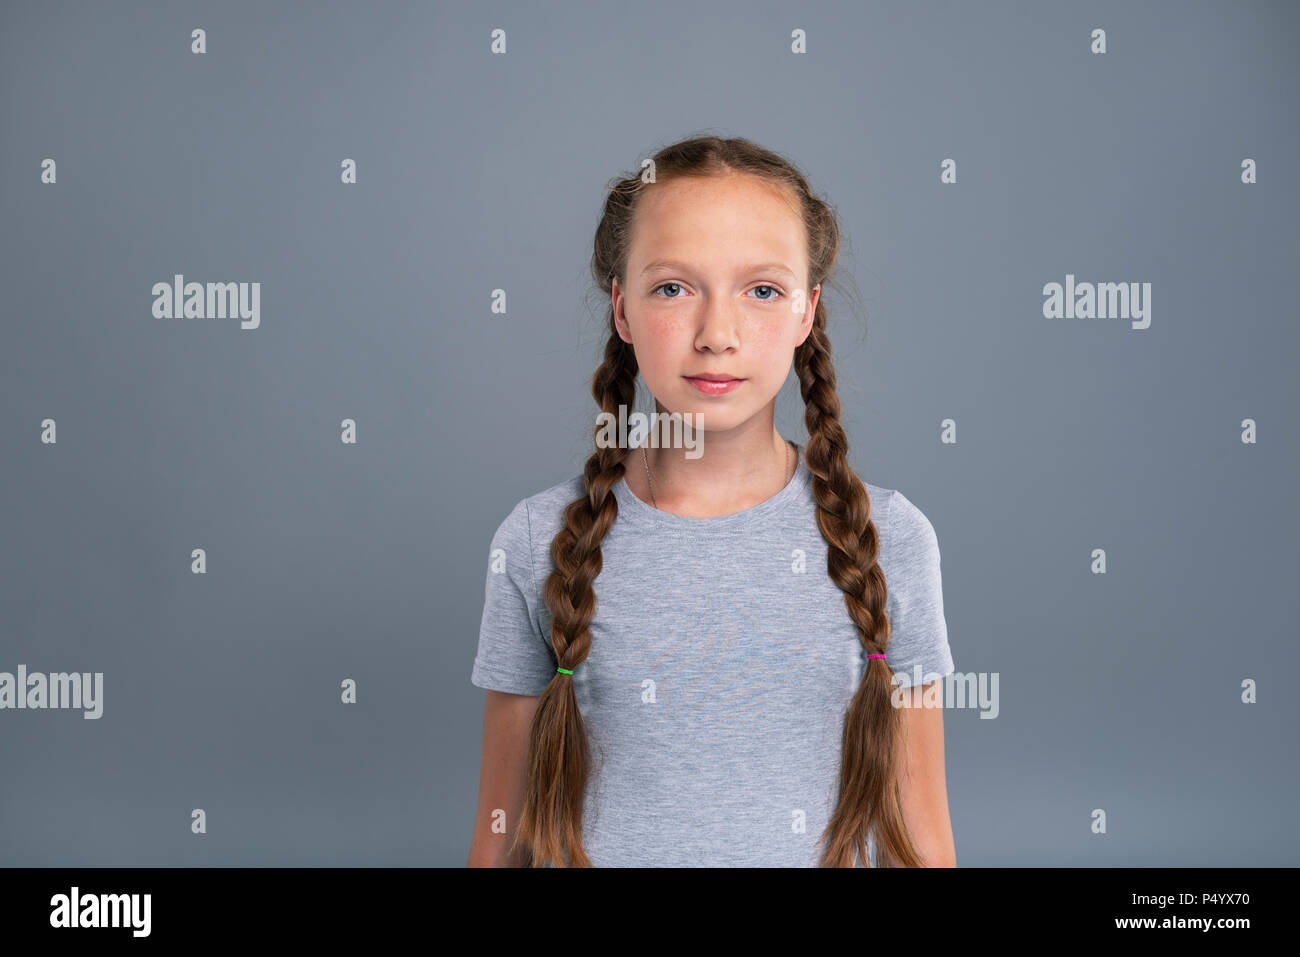 Portrait of a pretty teenage girl with two braids - Stock Image